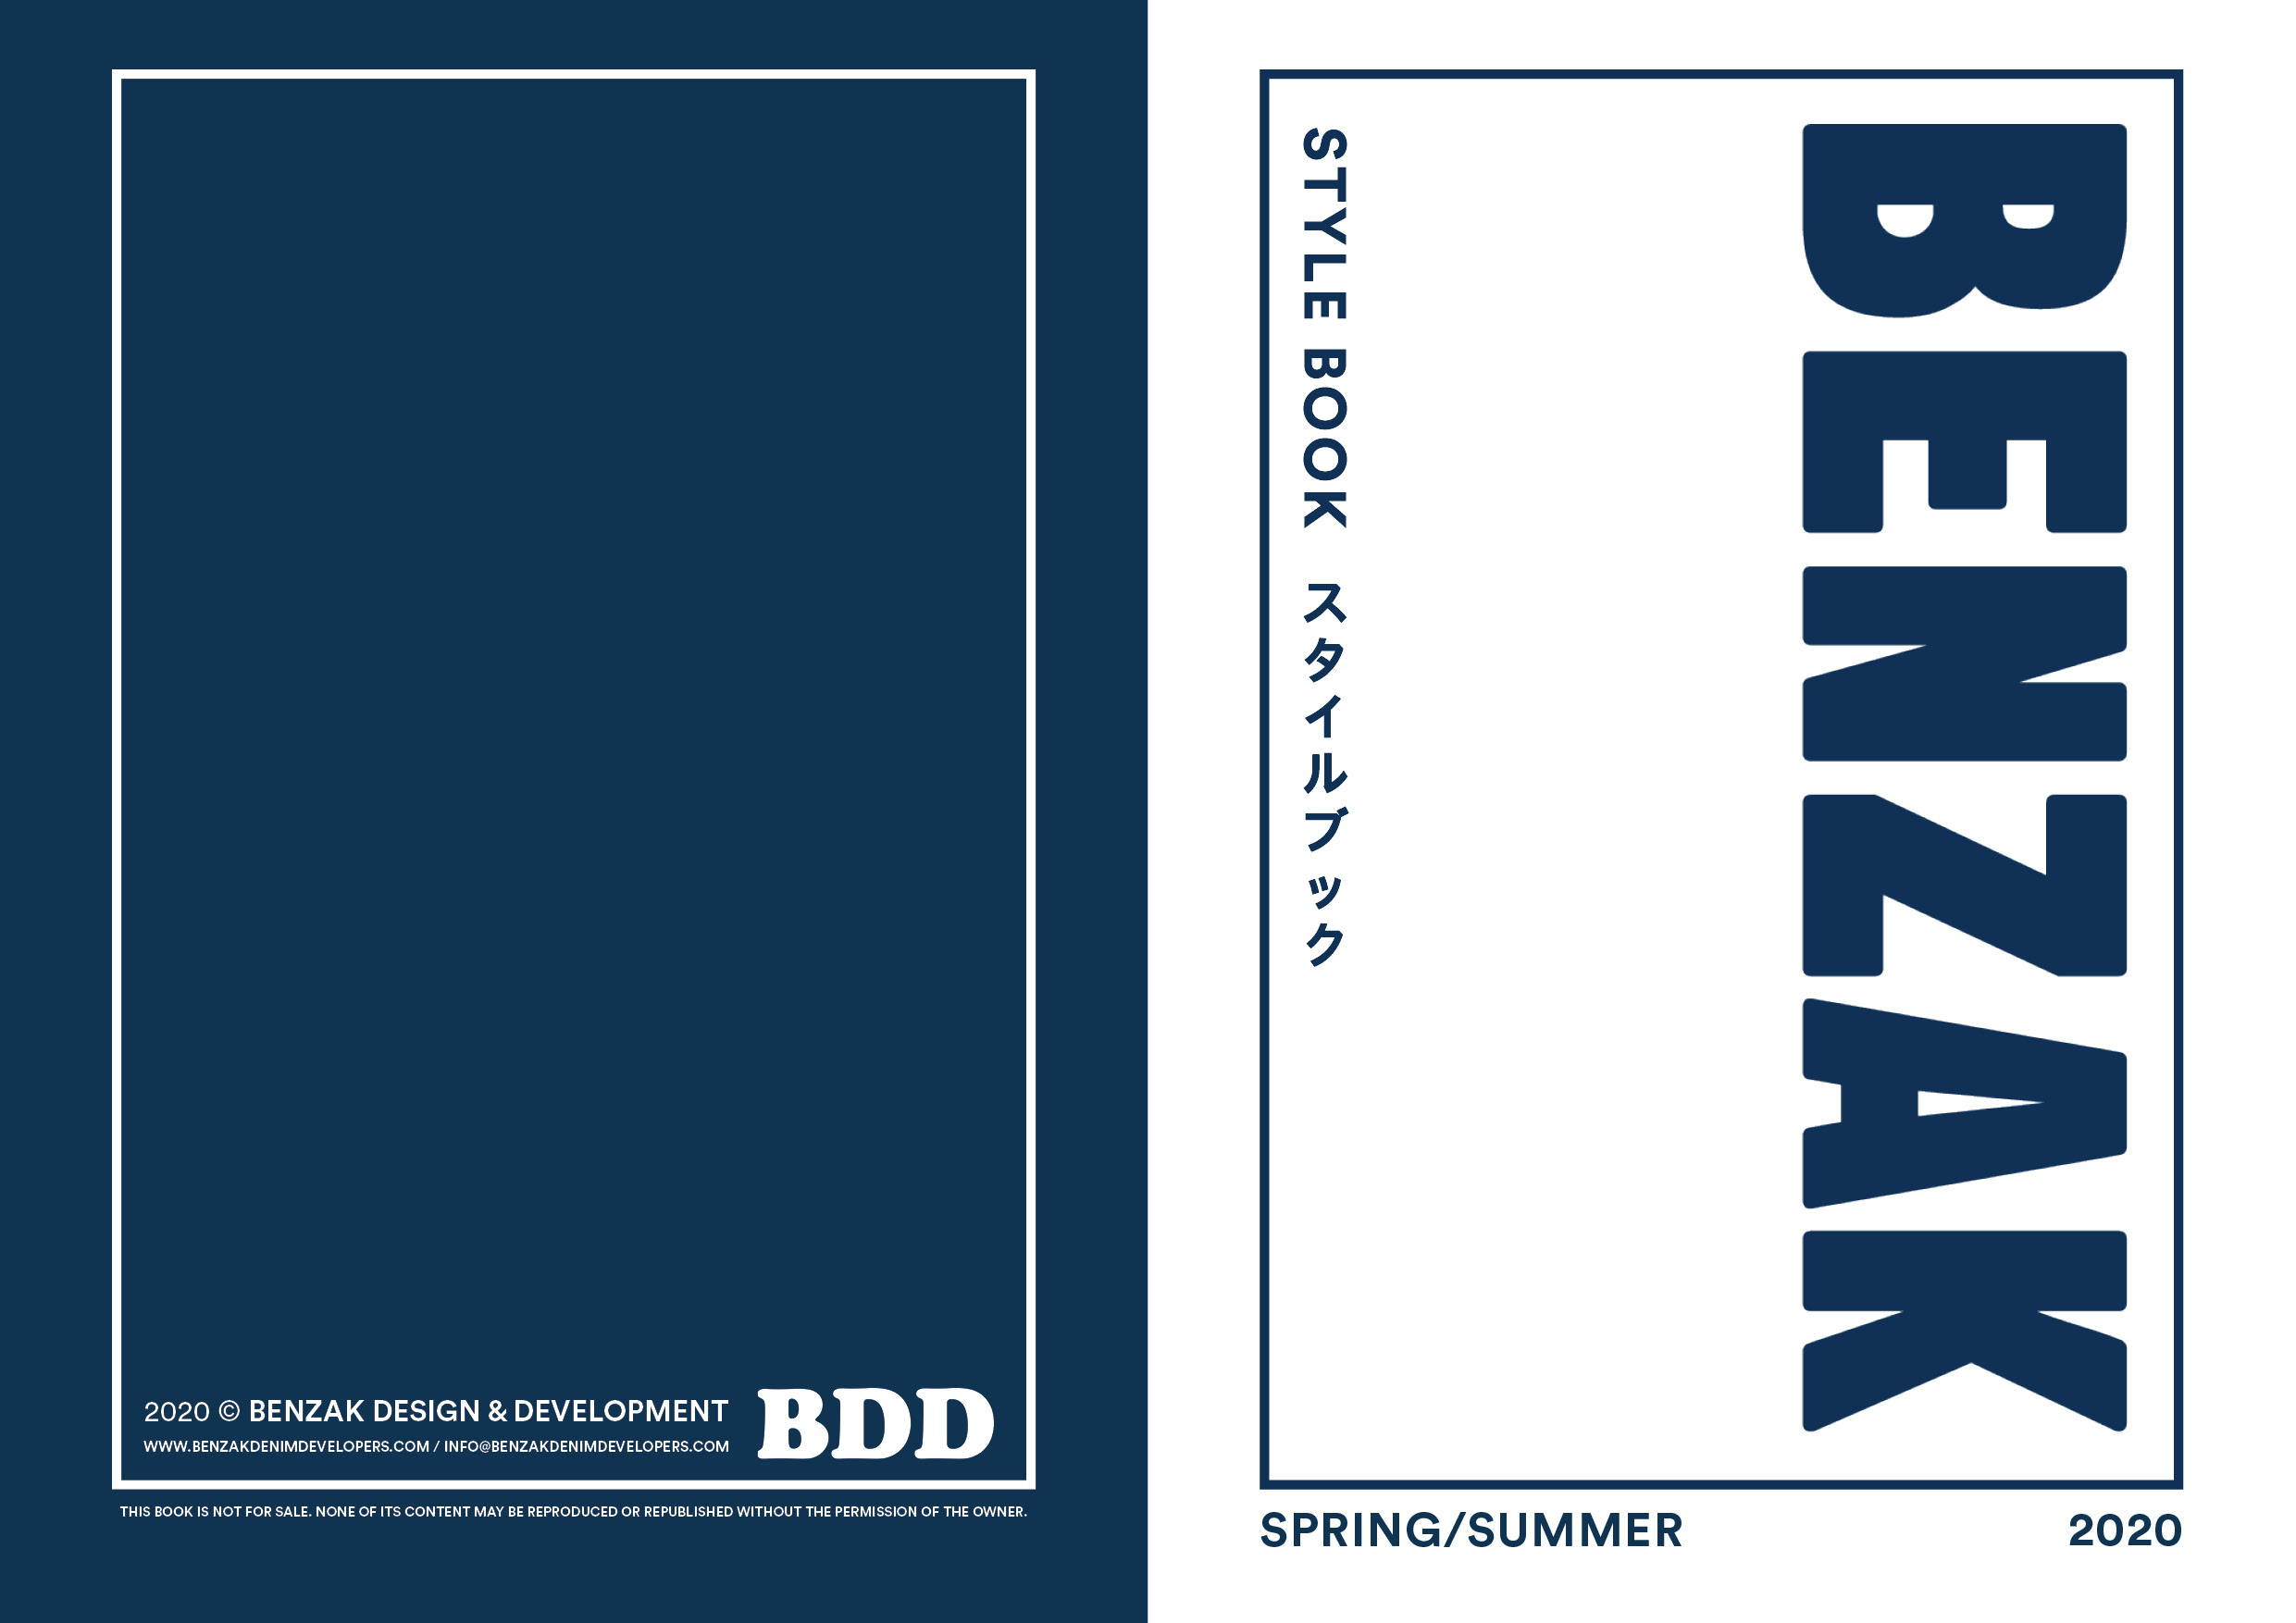 benzak denim developers SS20 stylebook, spring summer 2020 collection lookbook